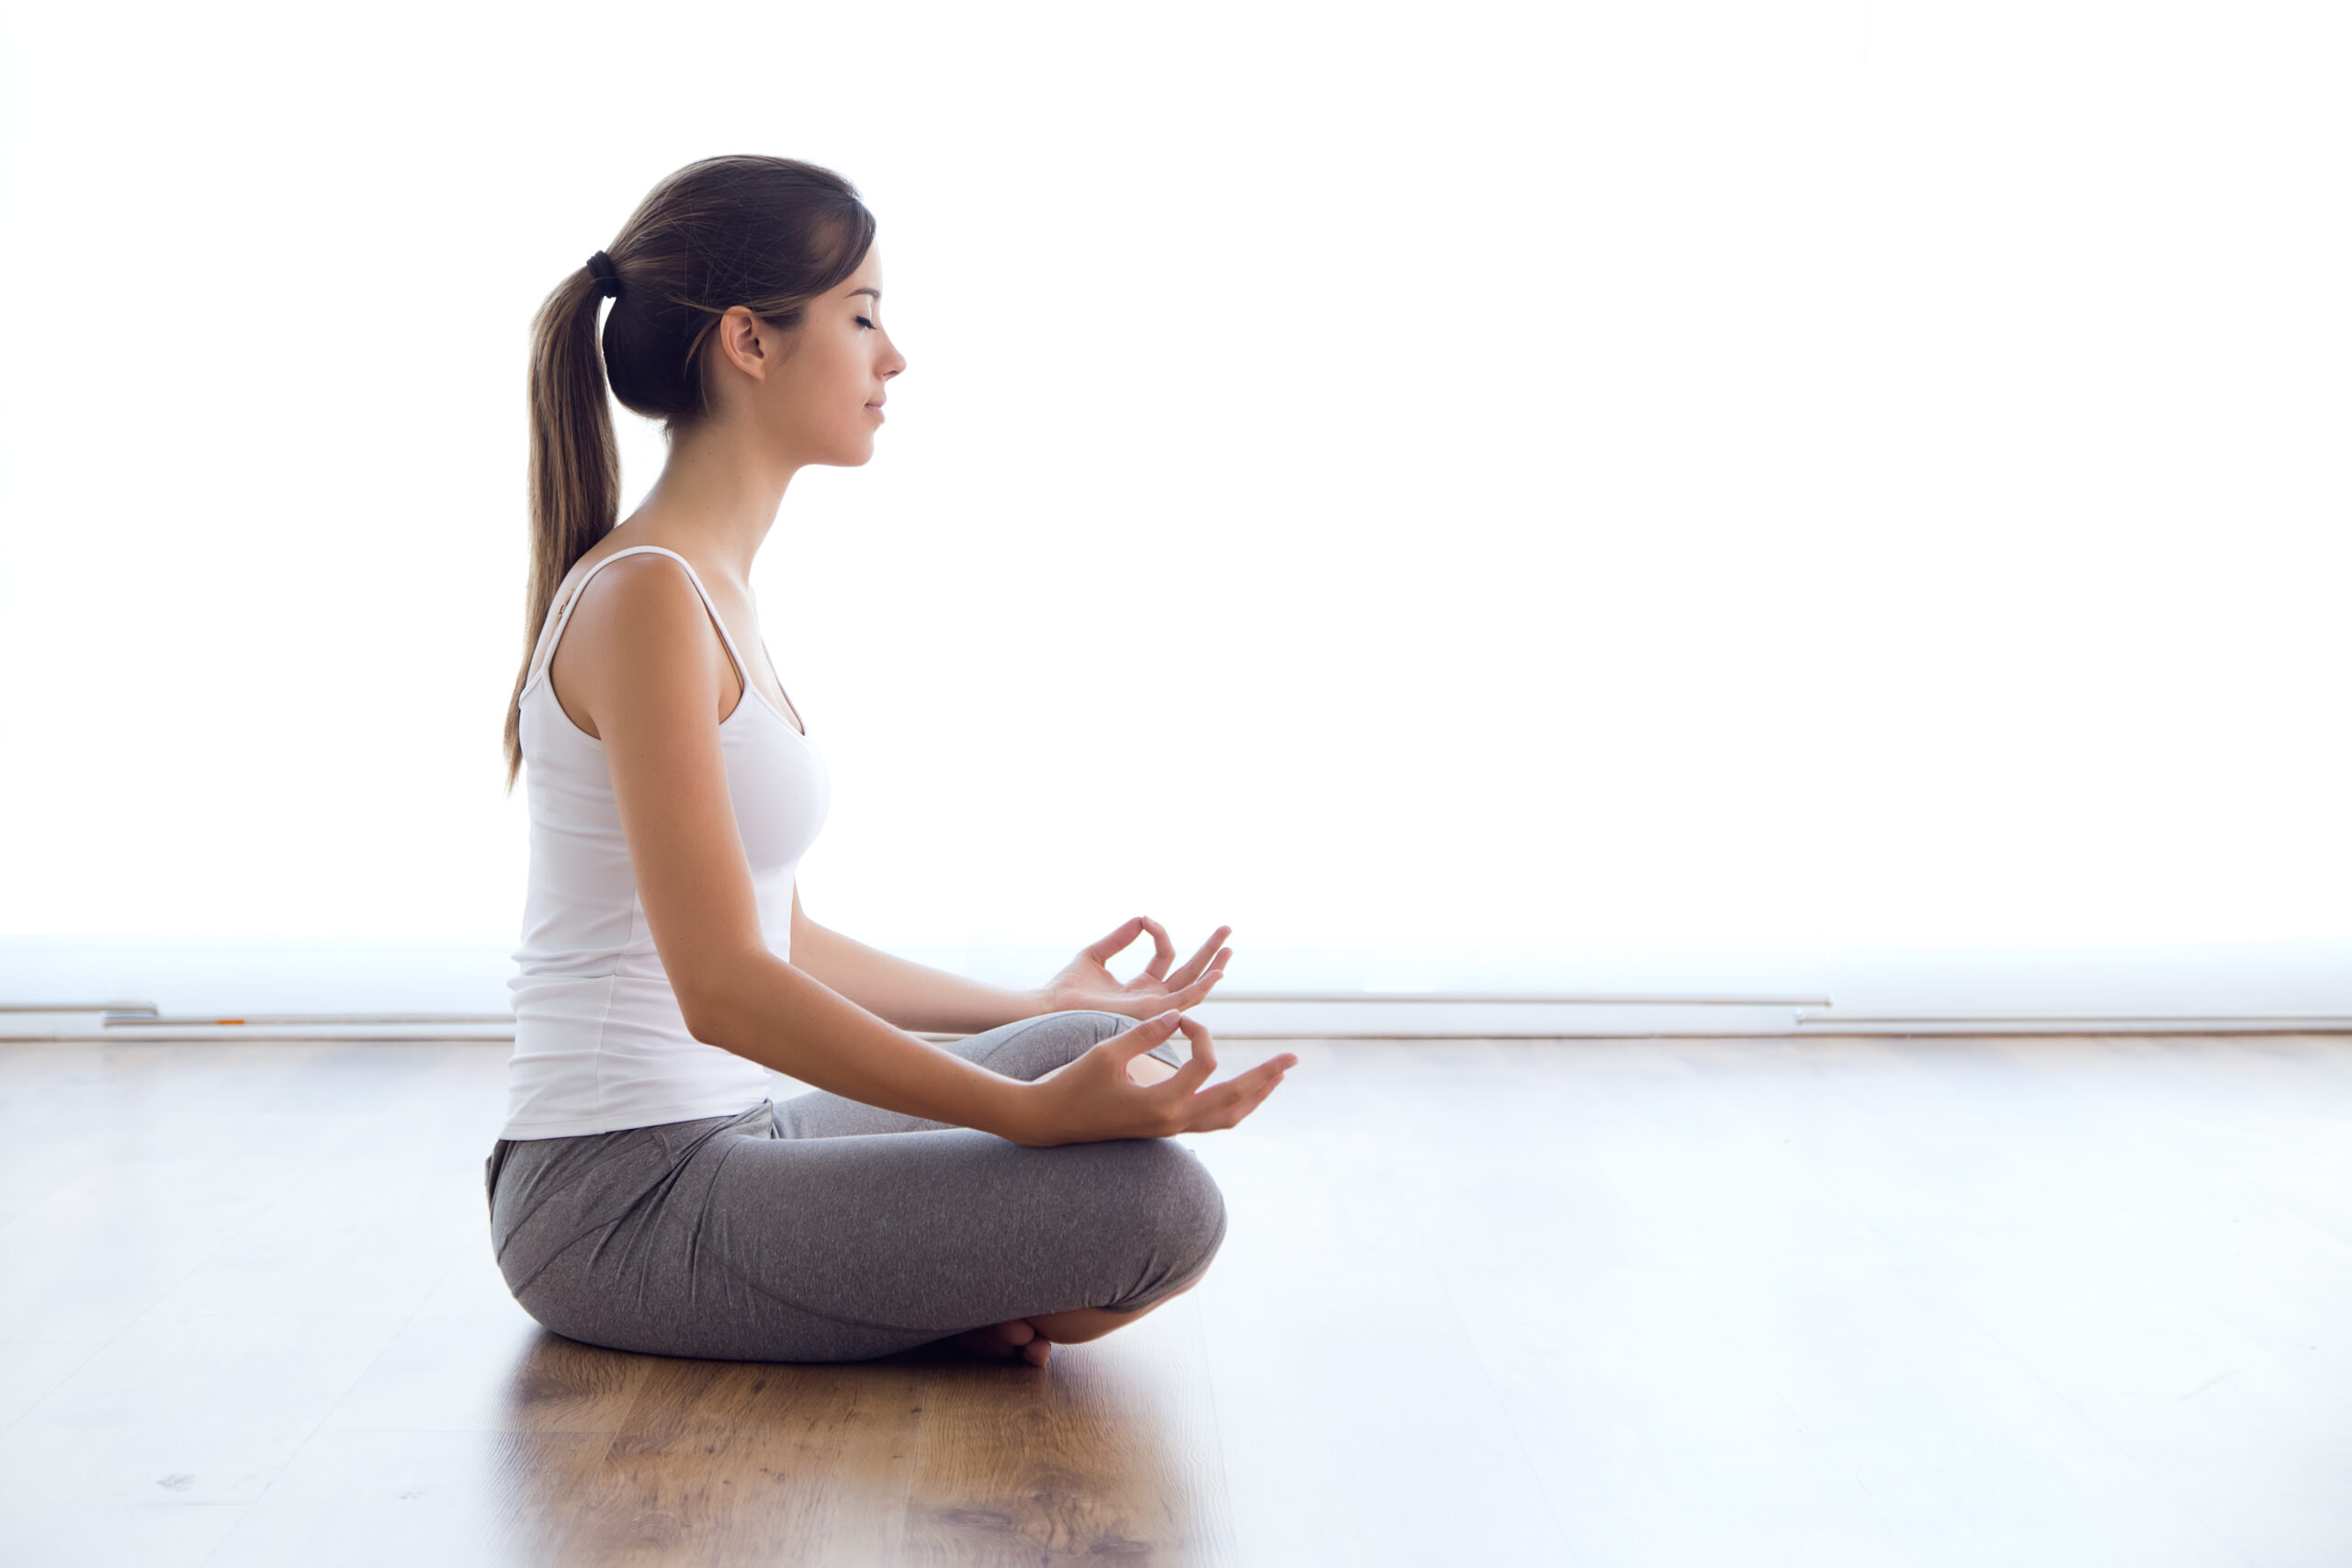 Portrait of beautiful young woman doing yoga exercises at home.